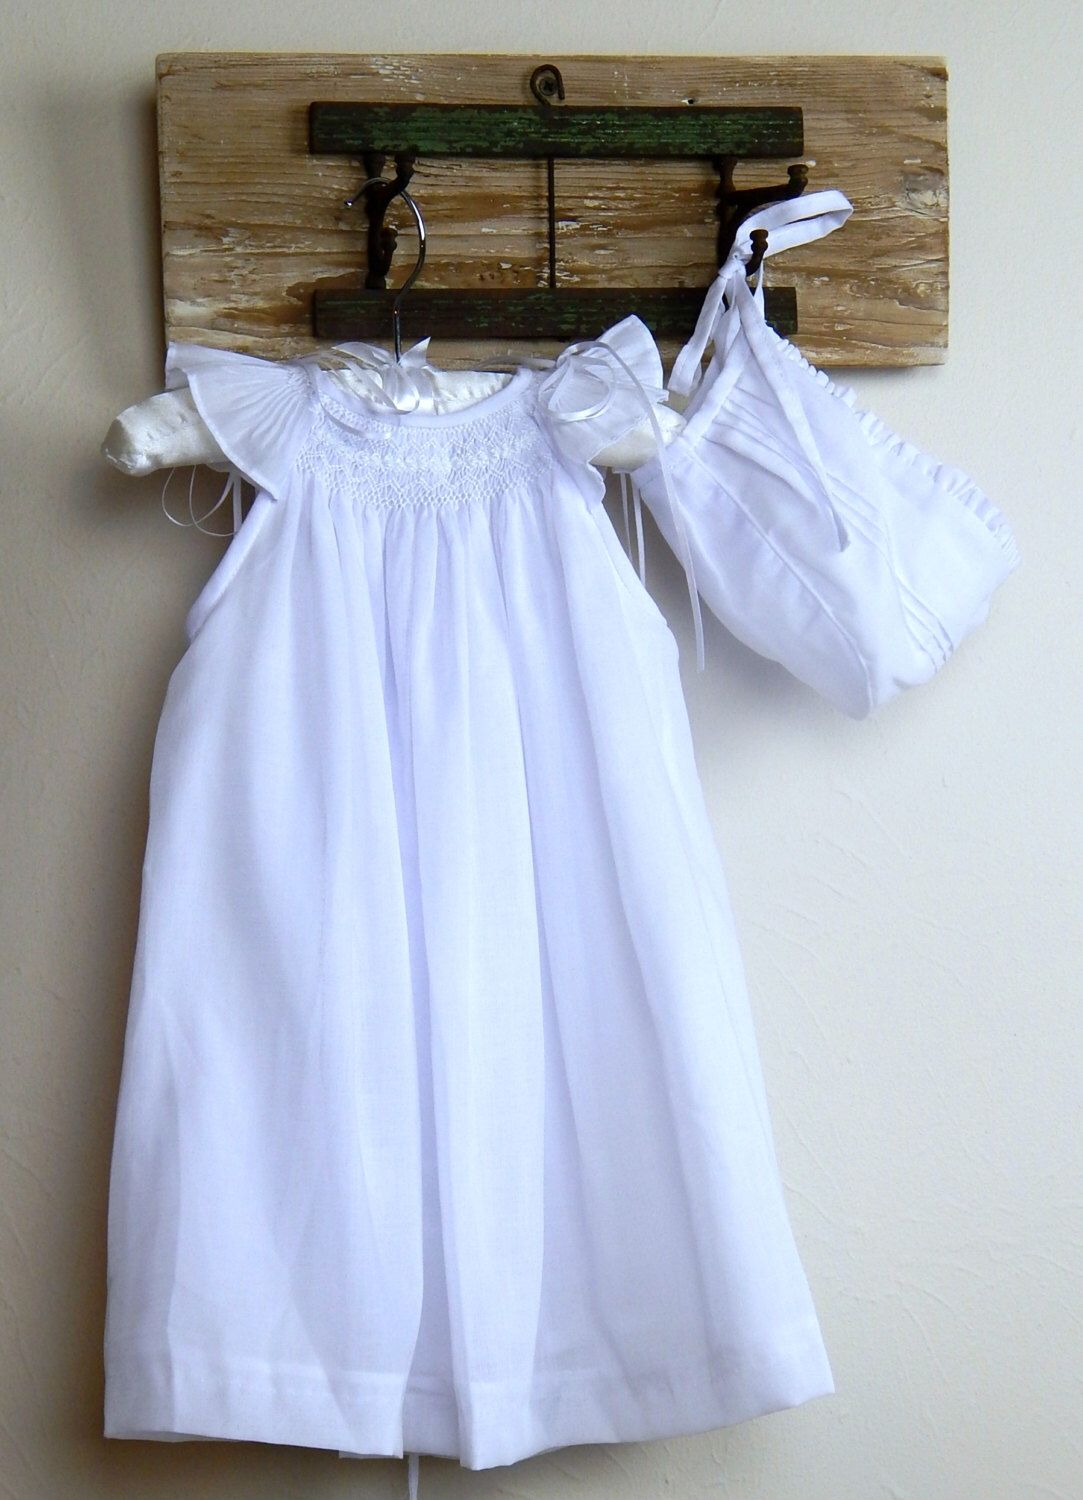 White Christening Gown with Bonnet, Baptism dress with bonnet - Smocked baby dress - infant christening bishop dress, girl blessing gown by SUMACLOTHING on Etsy https://www.etsy.com/listing/236373474/white-christening-gown-with-bonnet